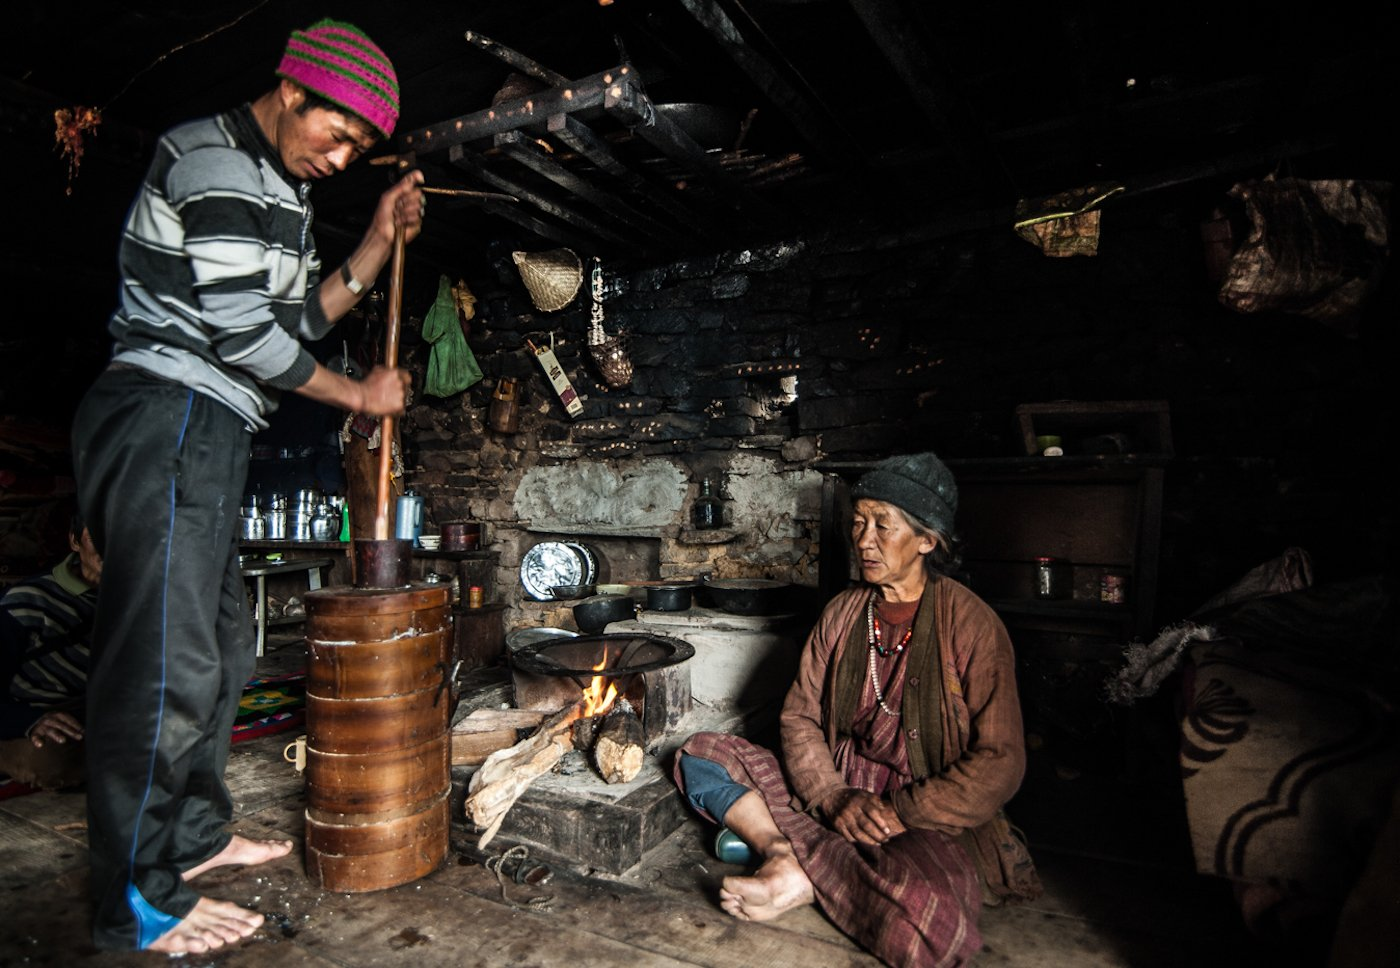 A Brokpa herdsman making butter andchurpi(traditional cheese) in his winter settlement in Lagam. Both items bring in some income for Brokpa families. Credit: Ritayan Mukherjee